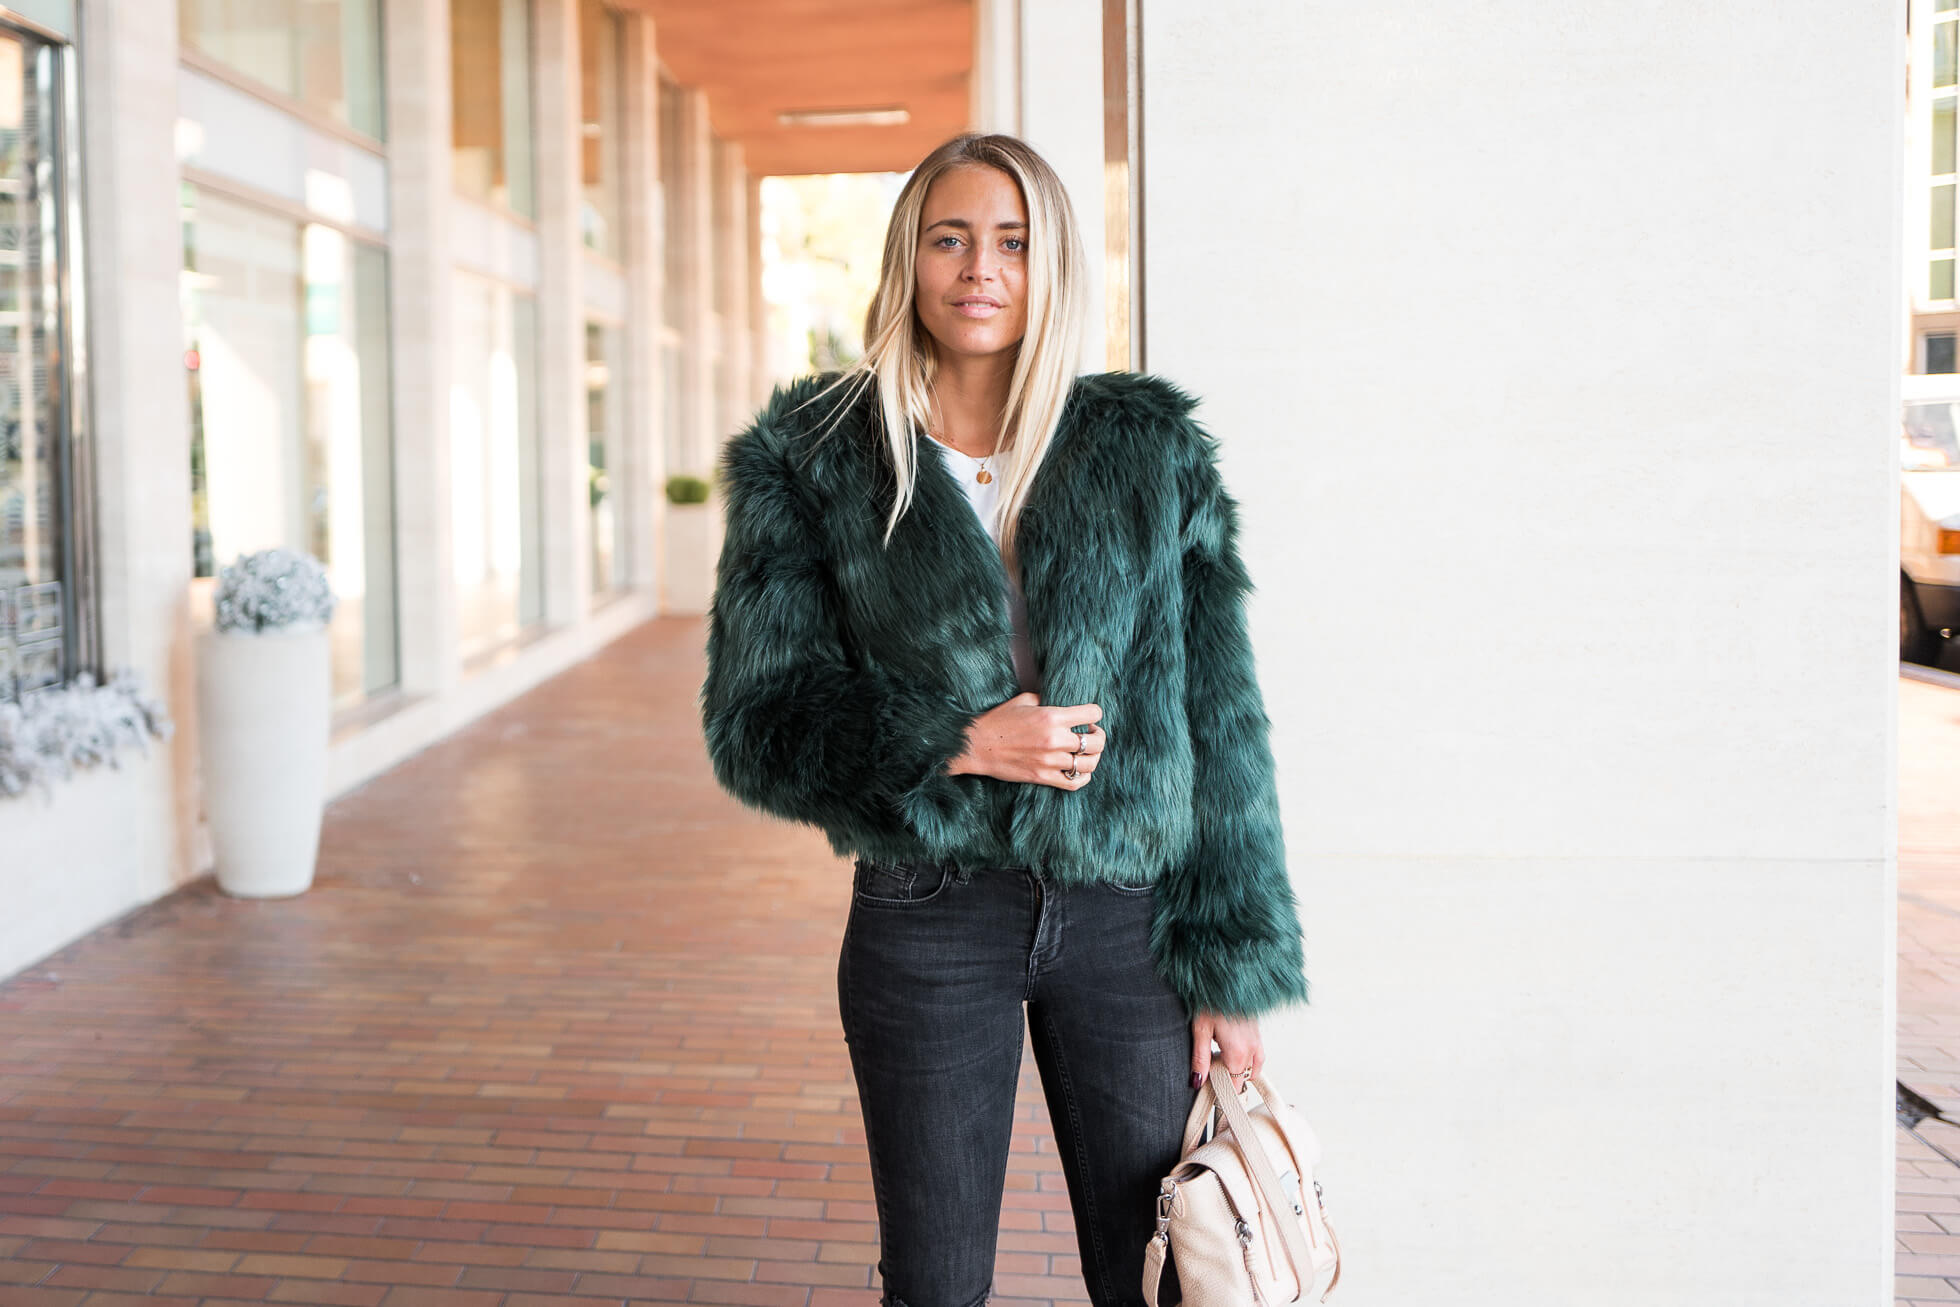 janni-deler-fluffy-greenl1200378